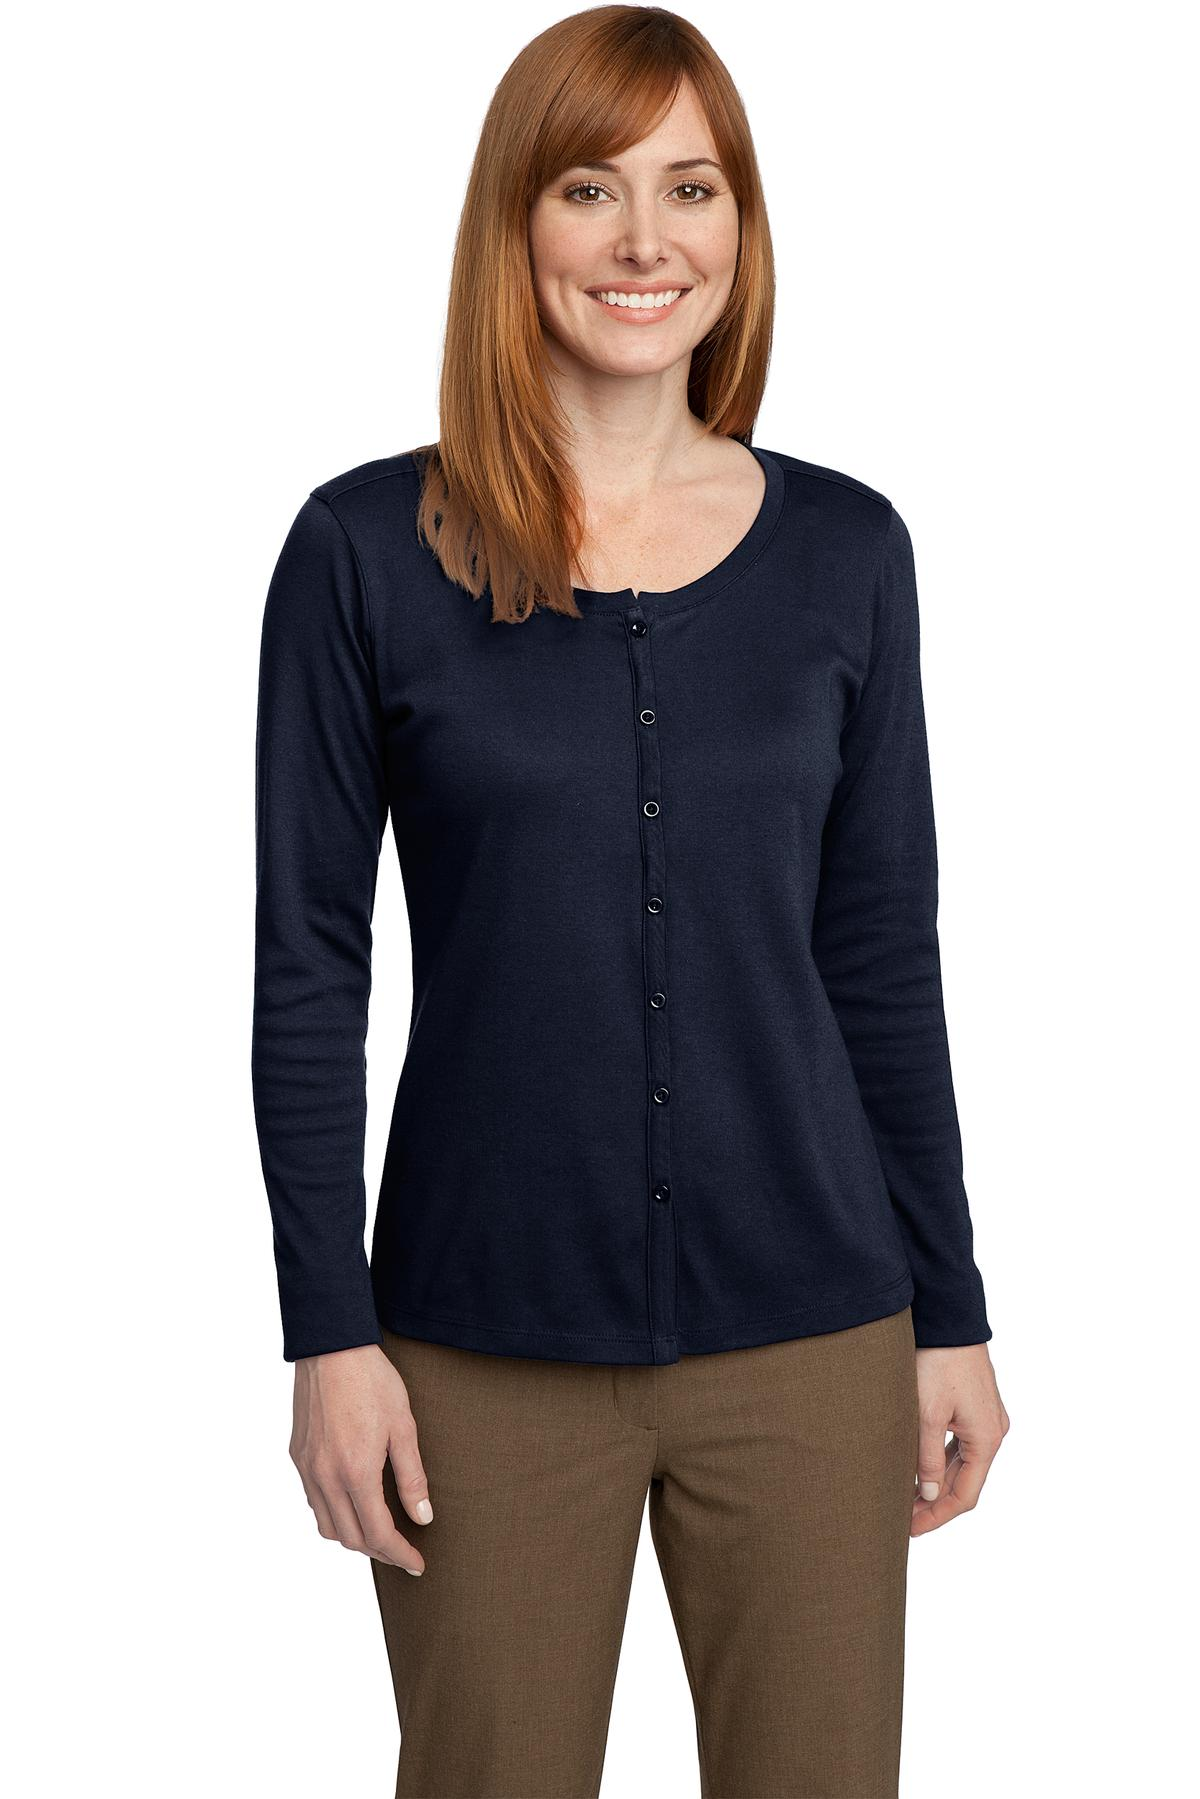 Port Authority® Ladies Silk Touch Interlock Cardigan.-Port Authority